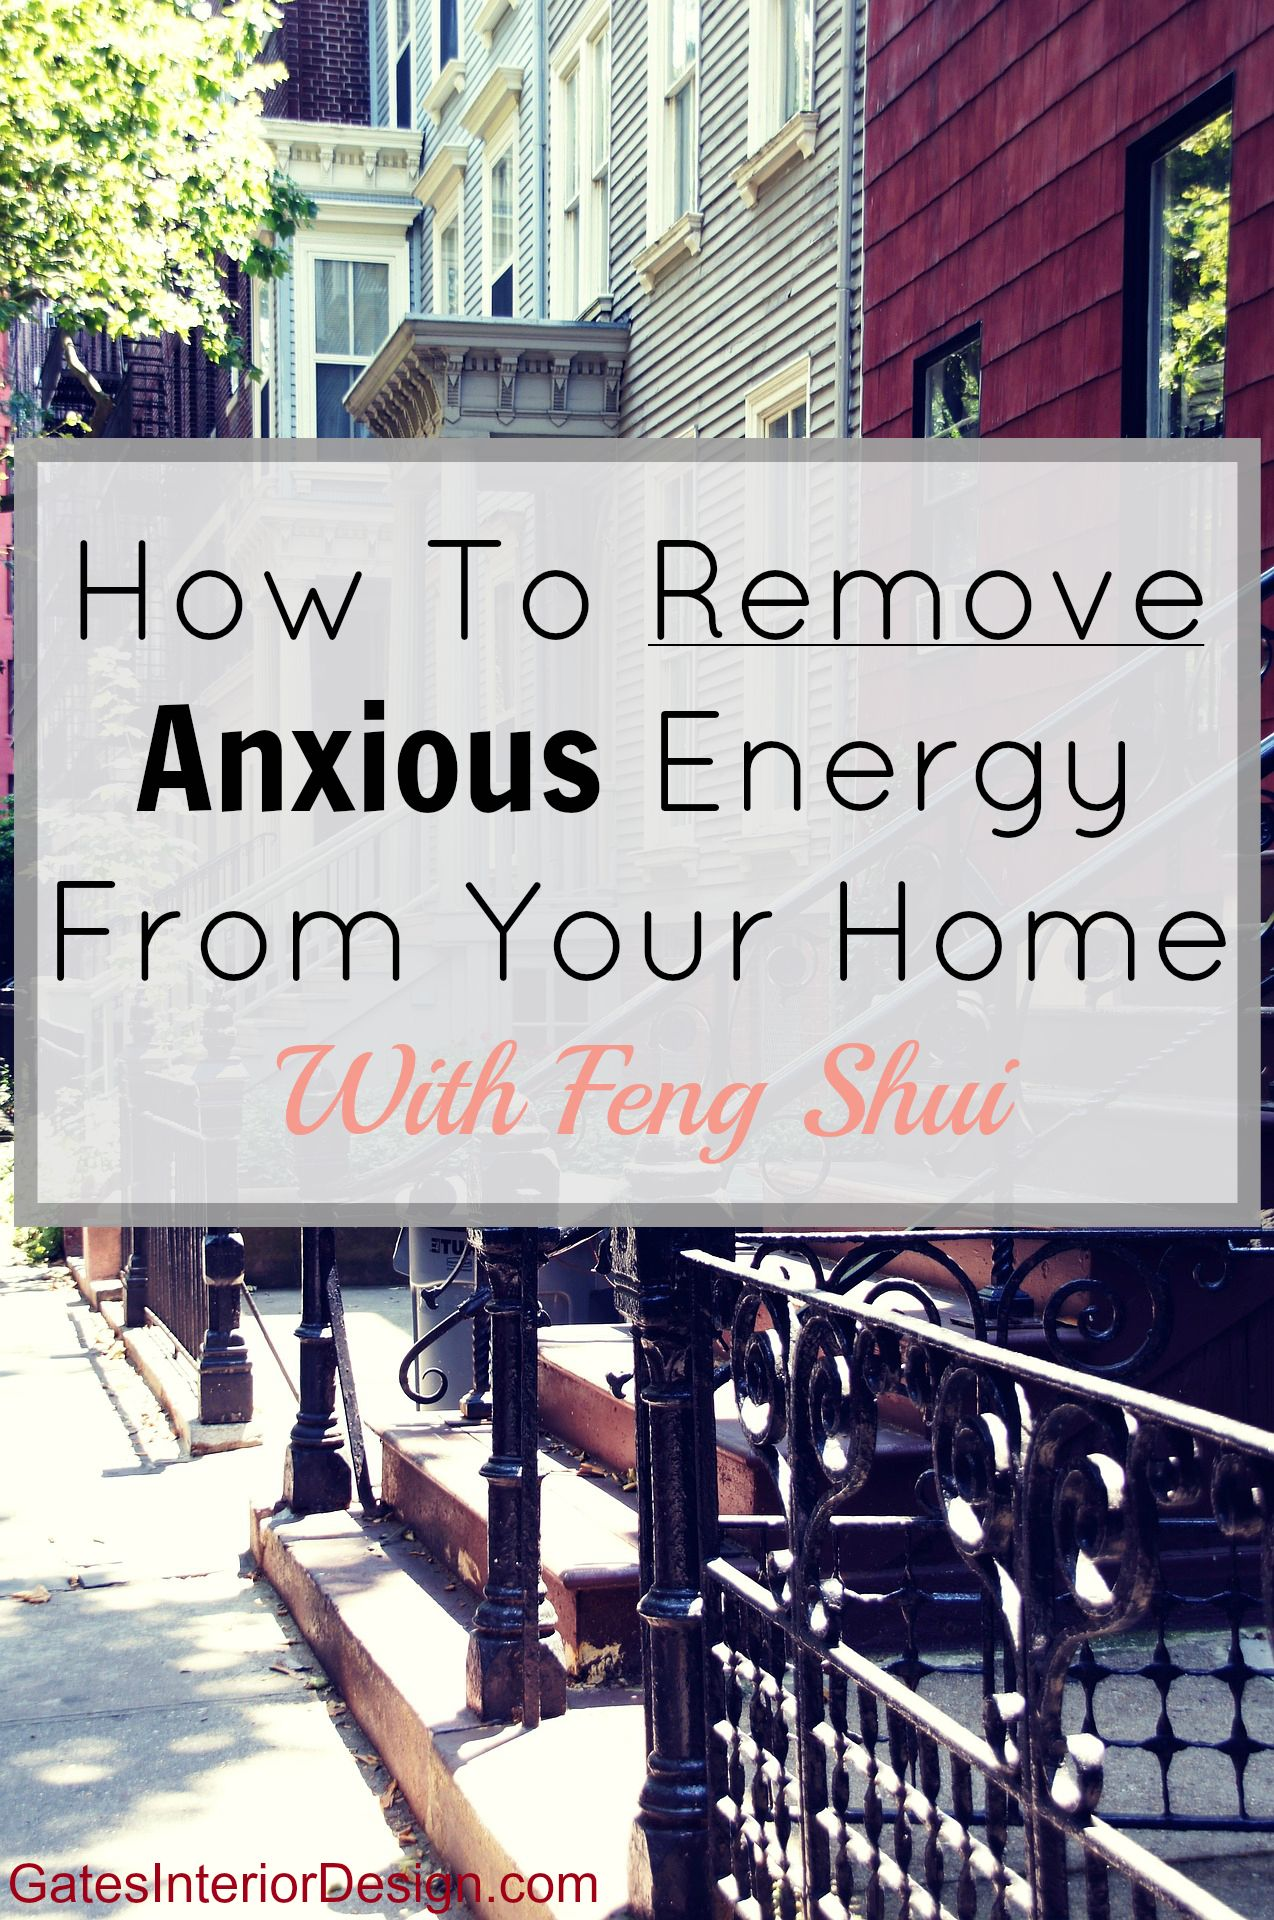 15 Easy Hacks For Achieving a Feng Shui House – Life at Home